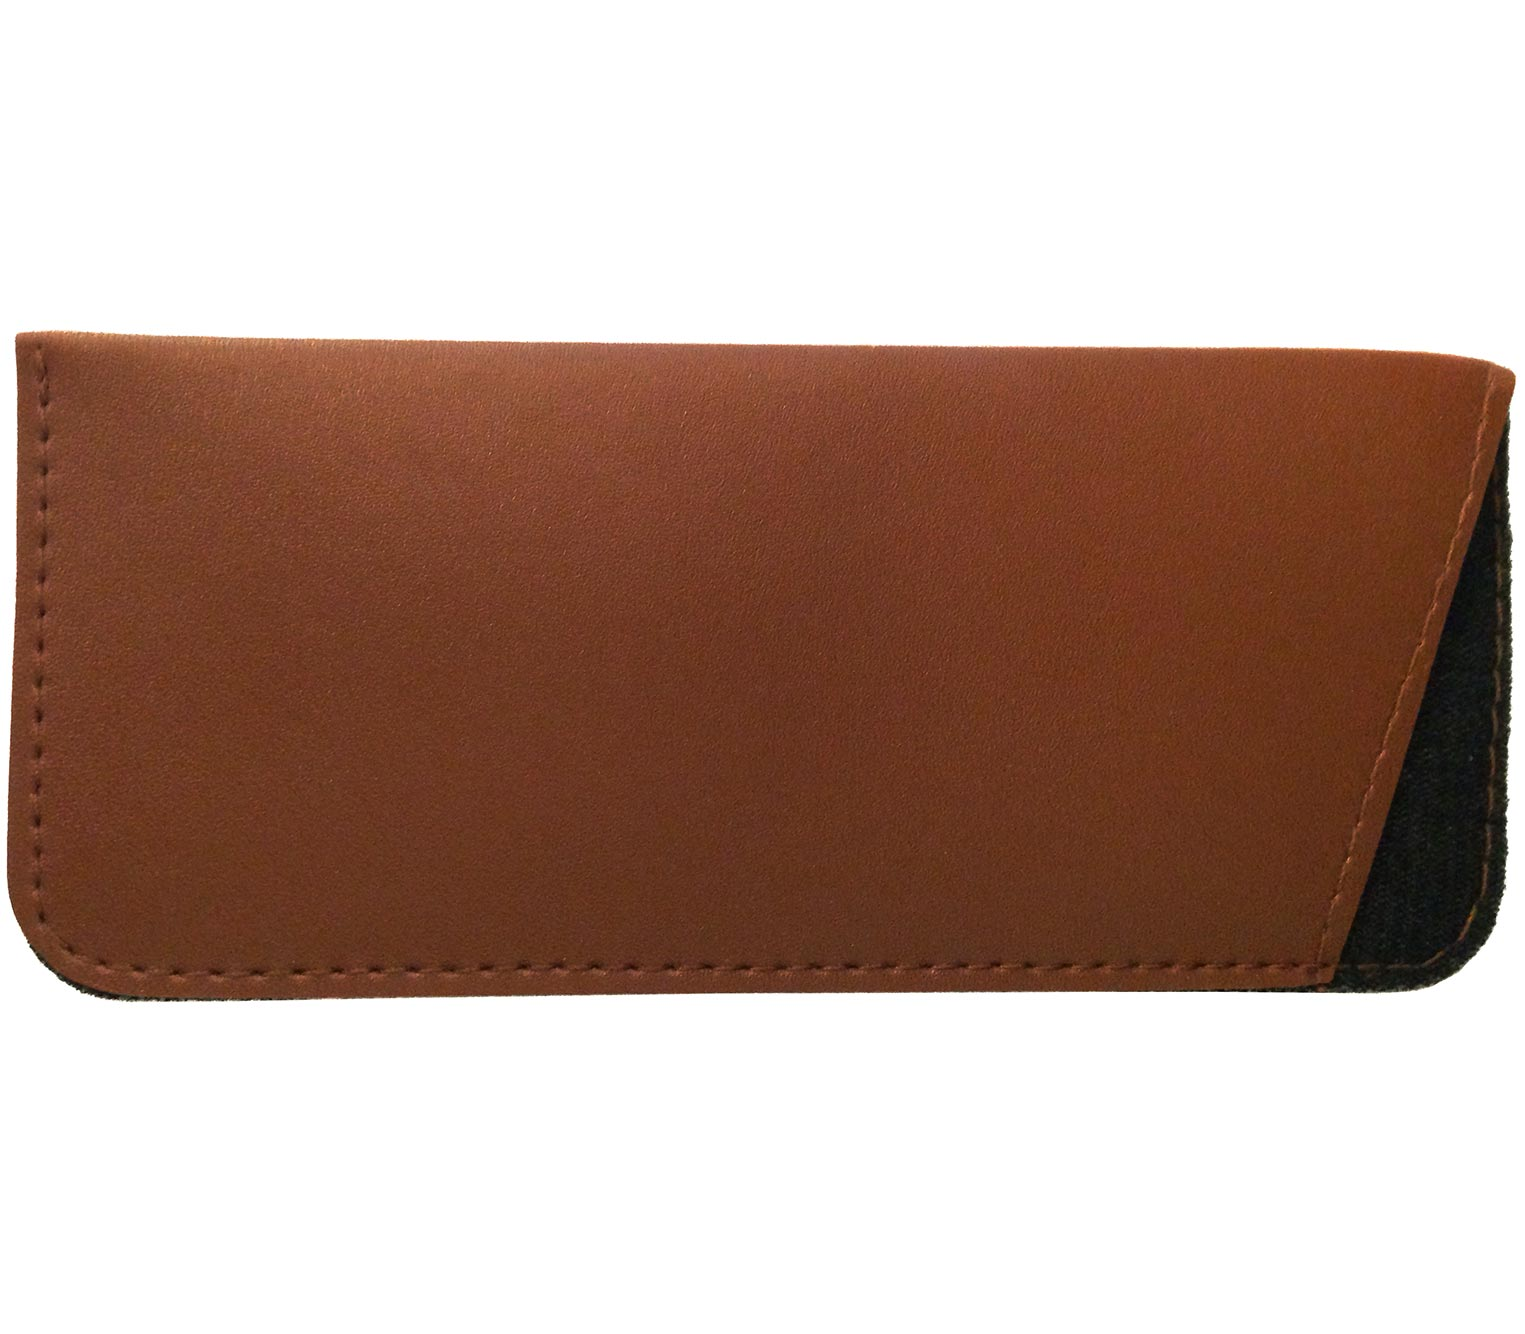 Main Image (Angle) - Brooks (Brown) Glasses Pouches Accessories